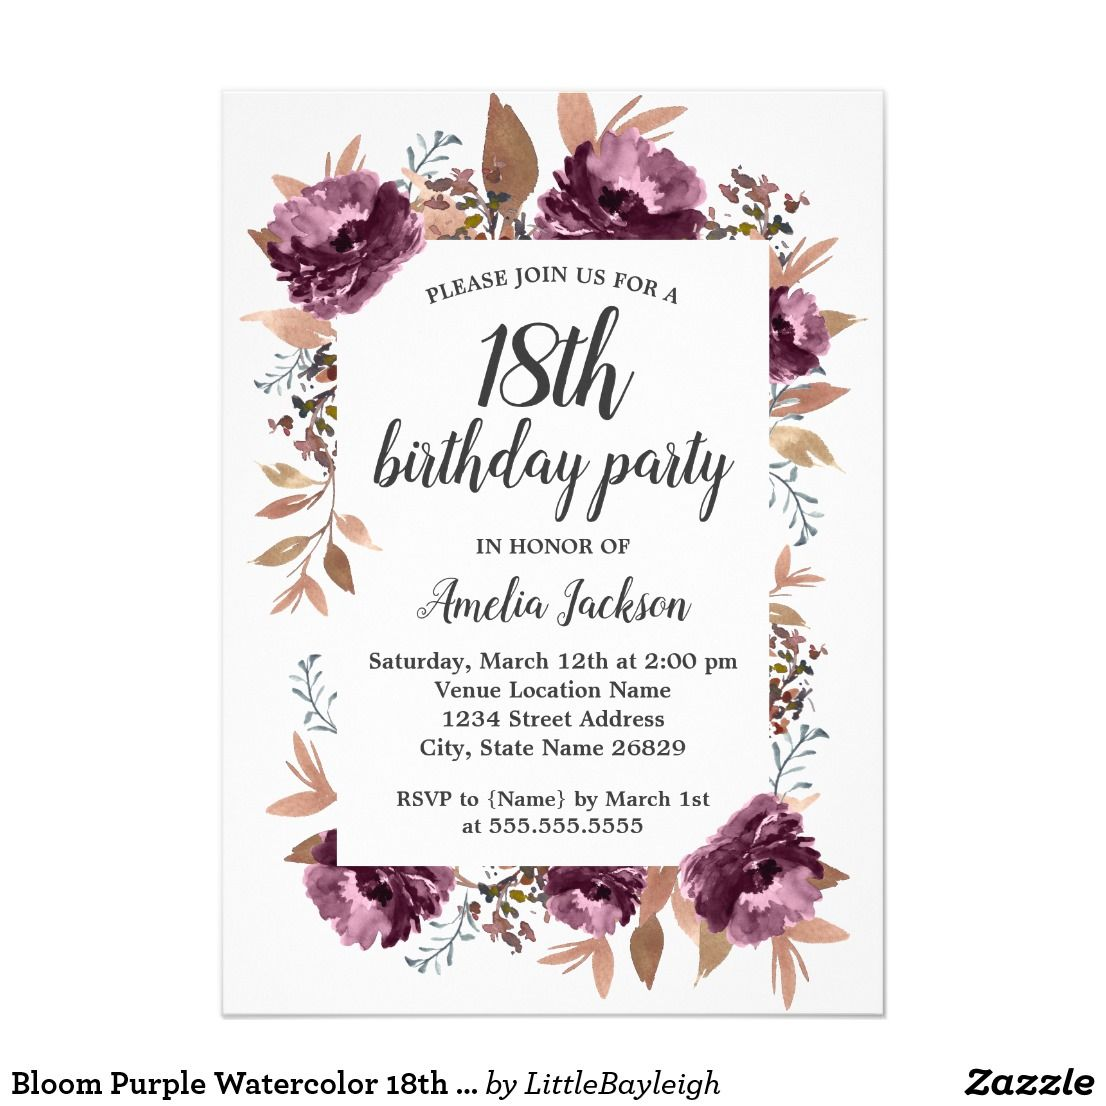 Bloom Purple Watercolor 18th Birthday Invitation